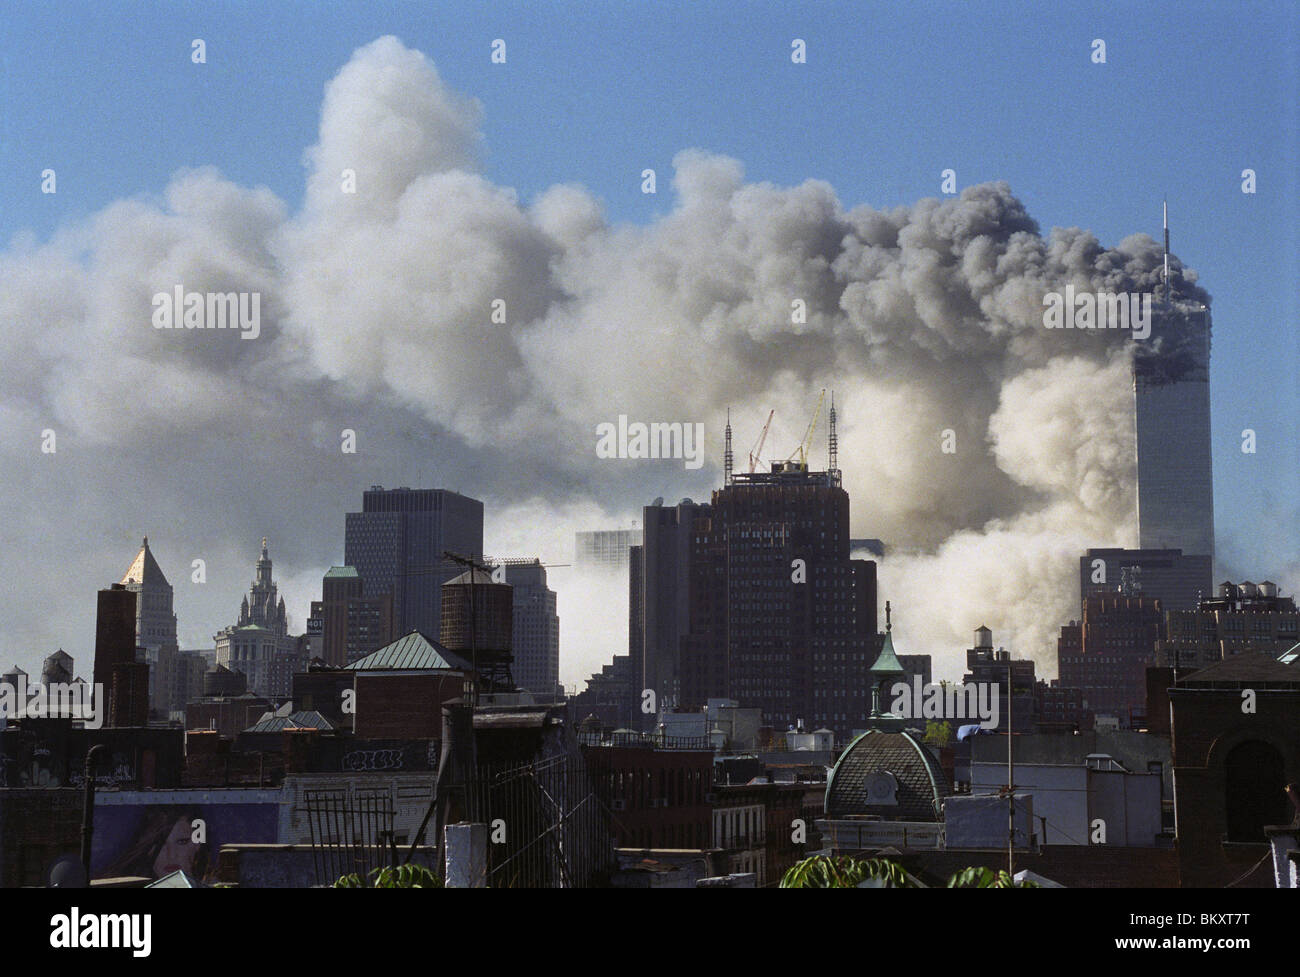 World Trade Center WTC Collapse September 11 ©Stacy Walsh Rosenstock/Alamy - Stock Image